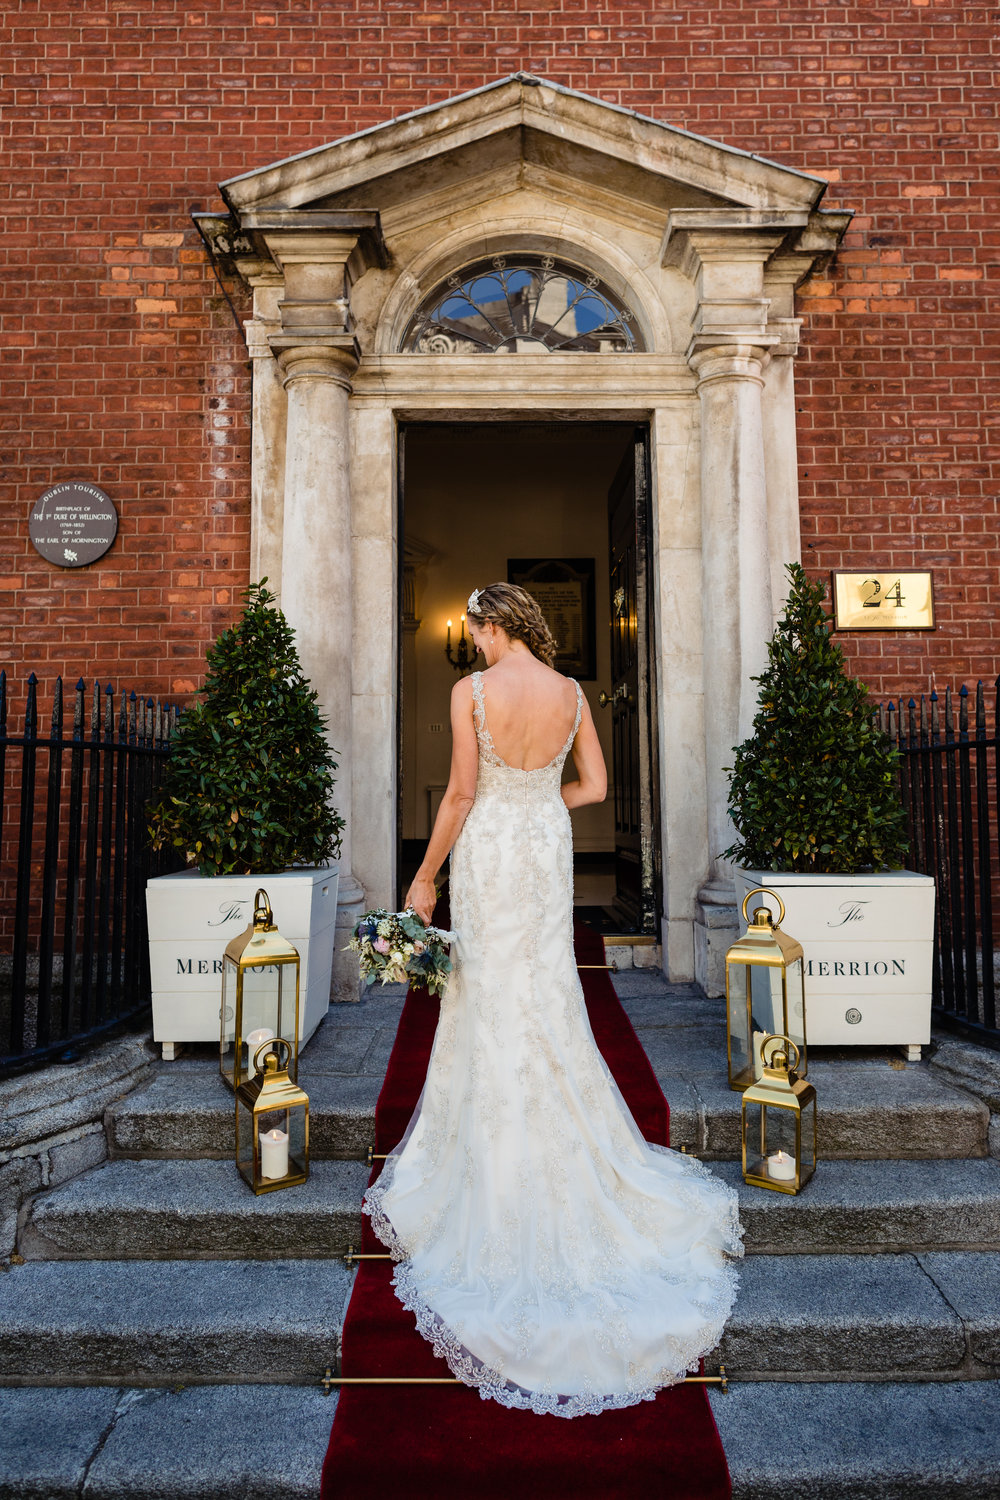 The Merrion Hotel wedding photo